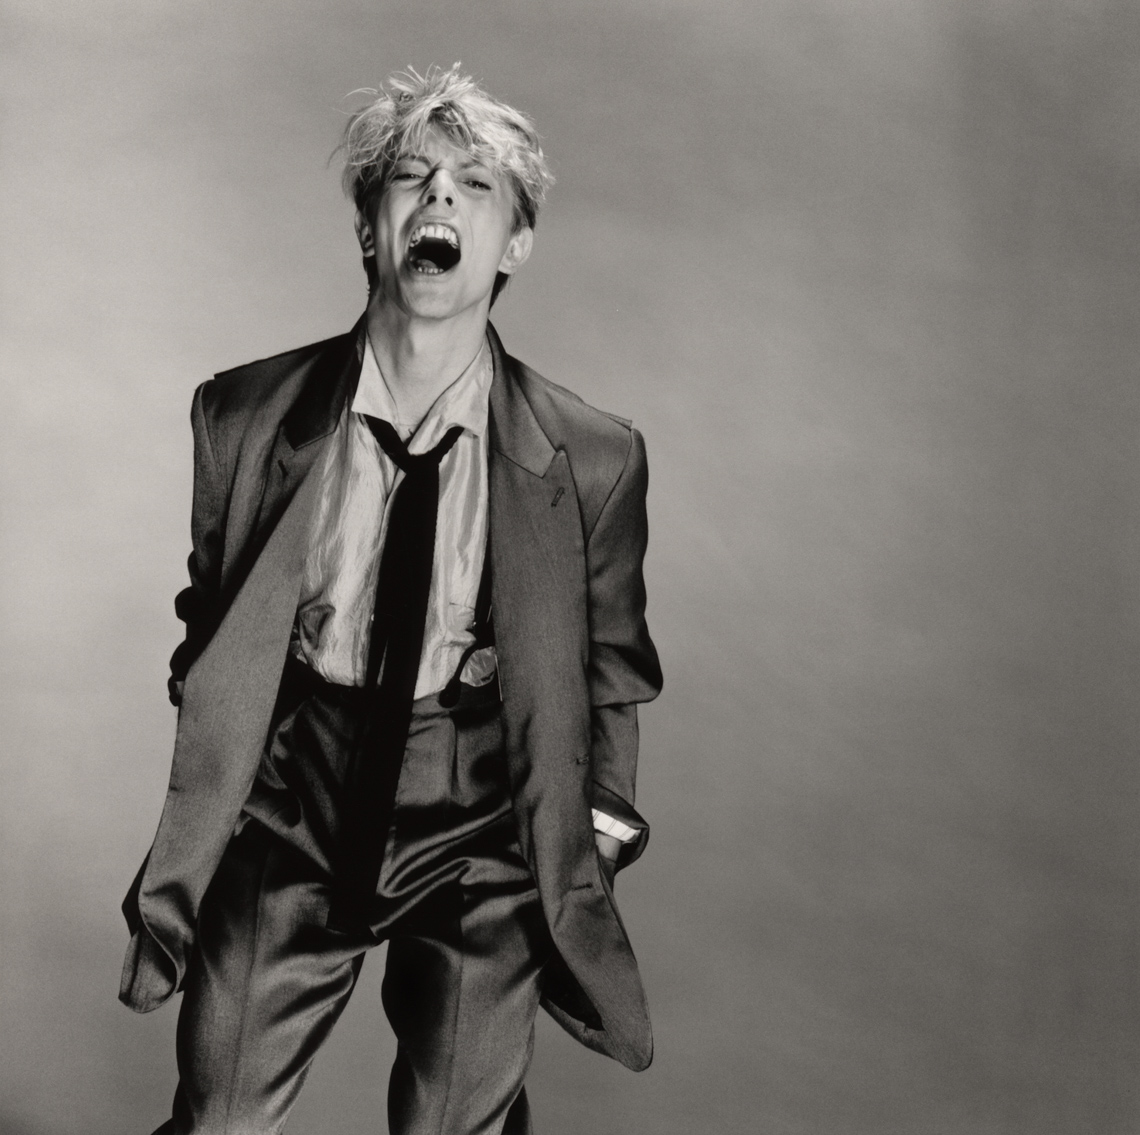 72._David_Bowie_screaming.tif